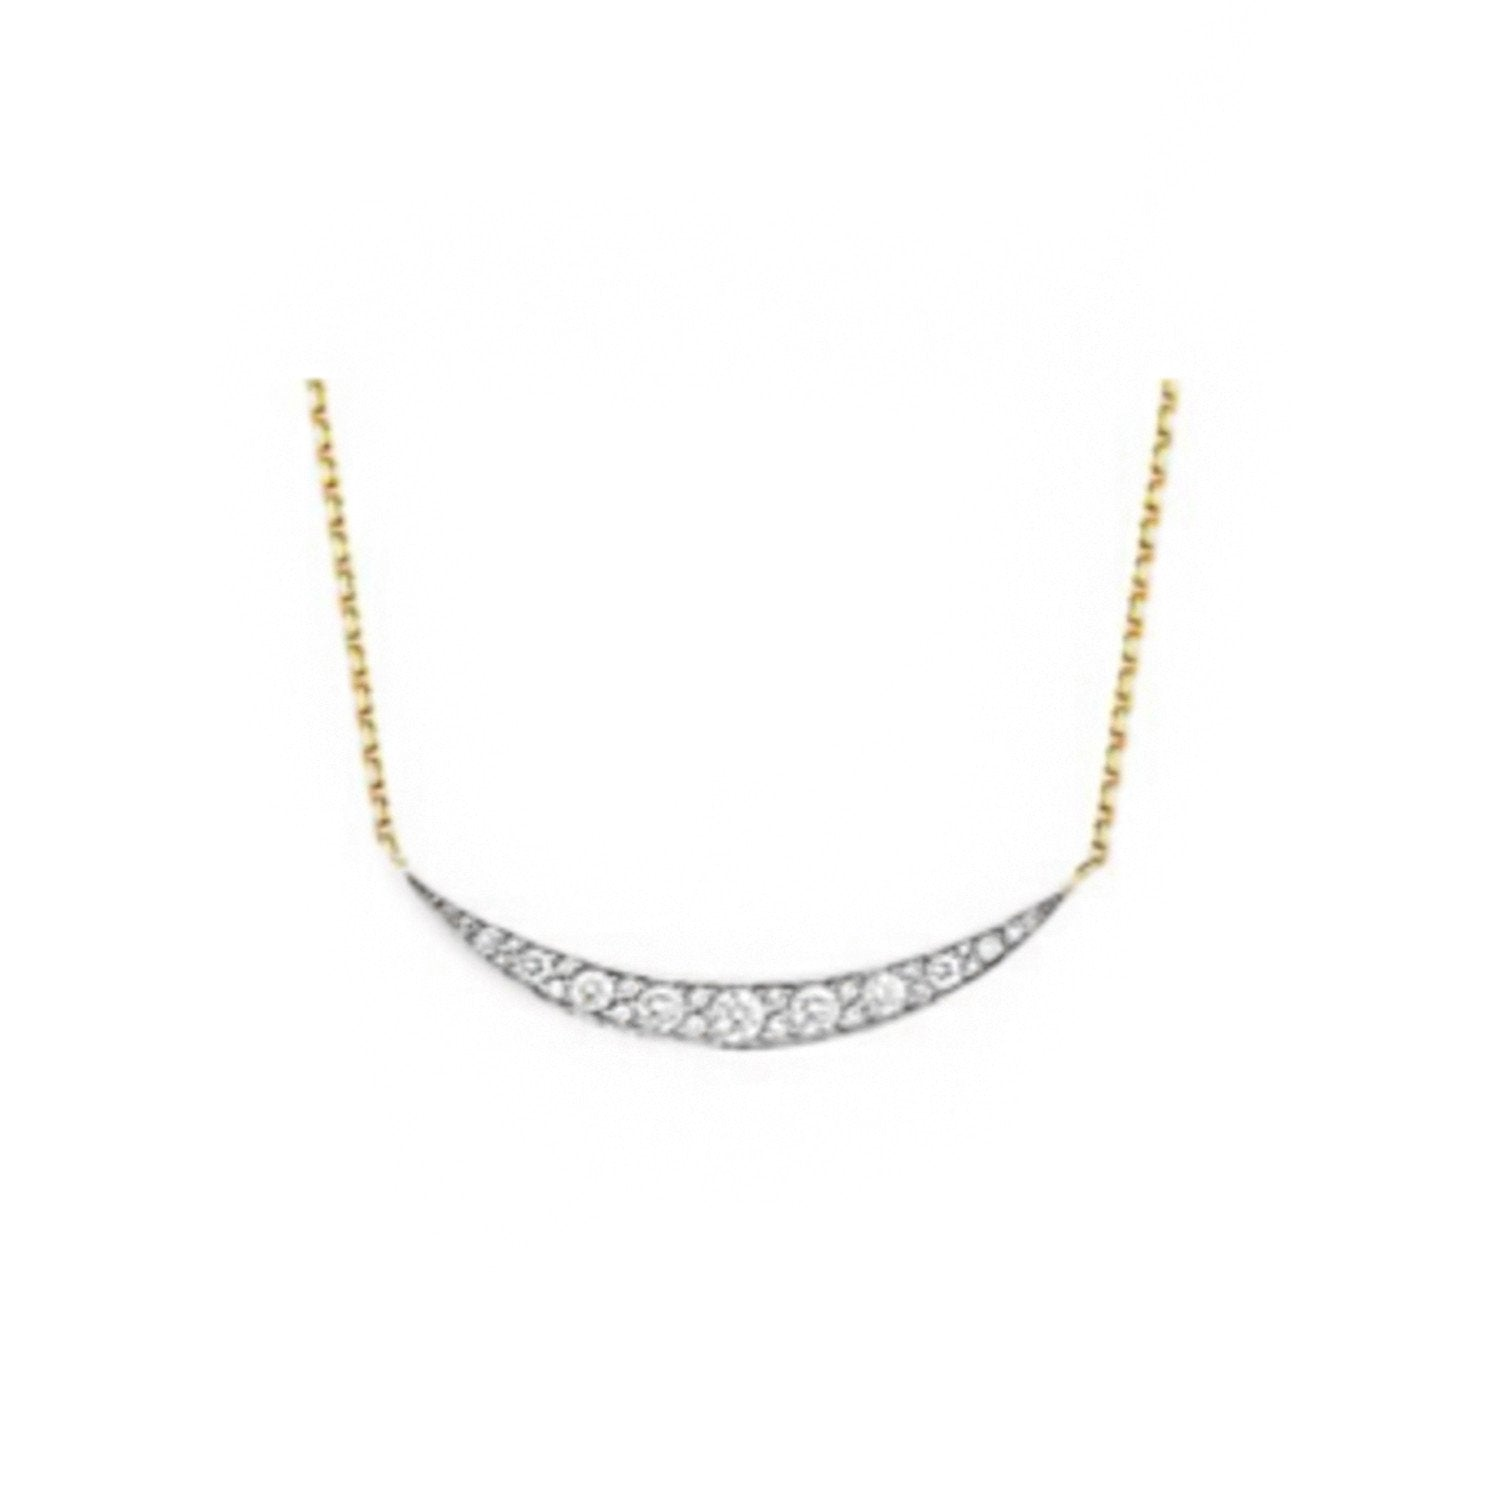 Constellation Crescent Necklace